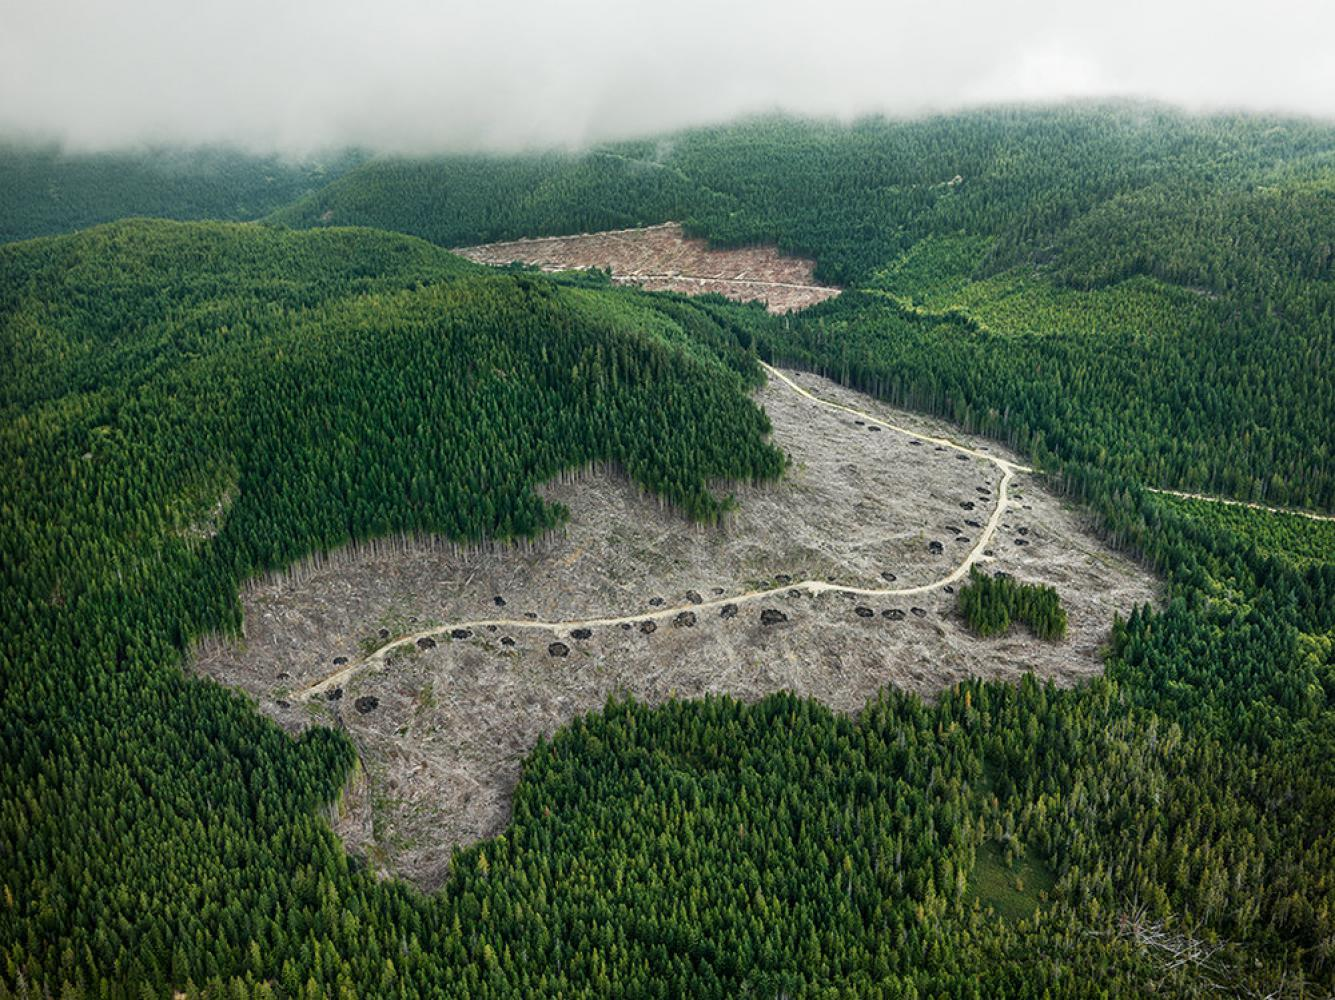 Foto: © Edward Burtynsky, courtesy Flowers Gallery, London/Metivier Gallery, Toronto